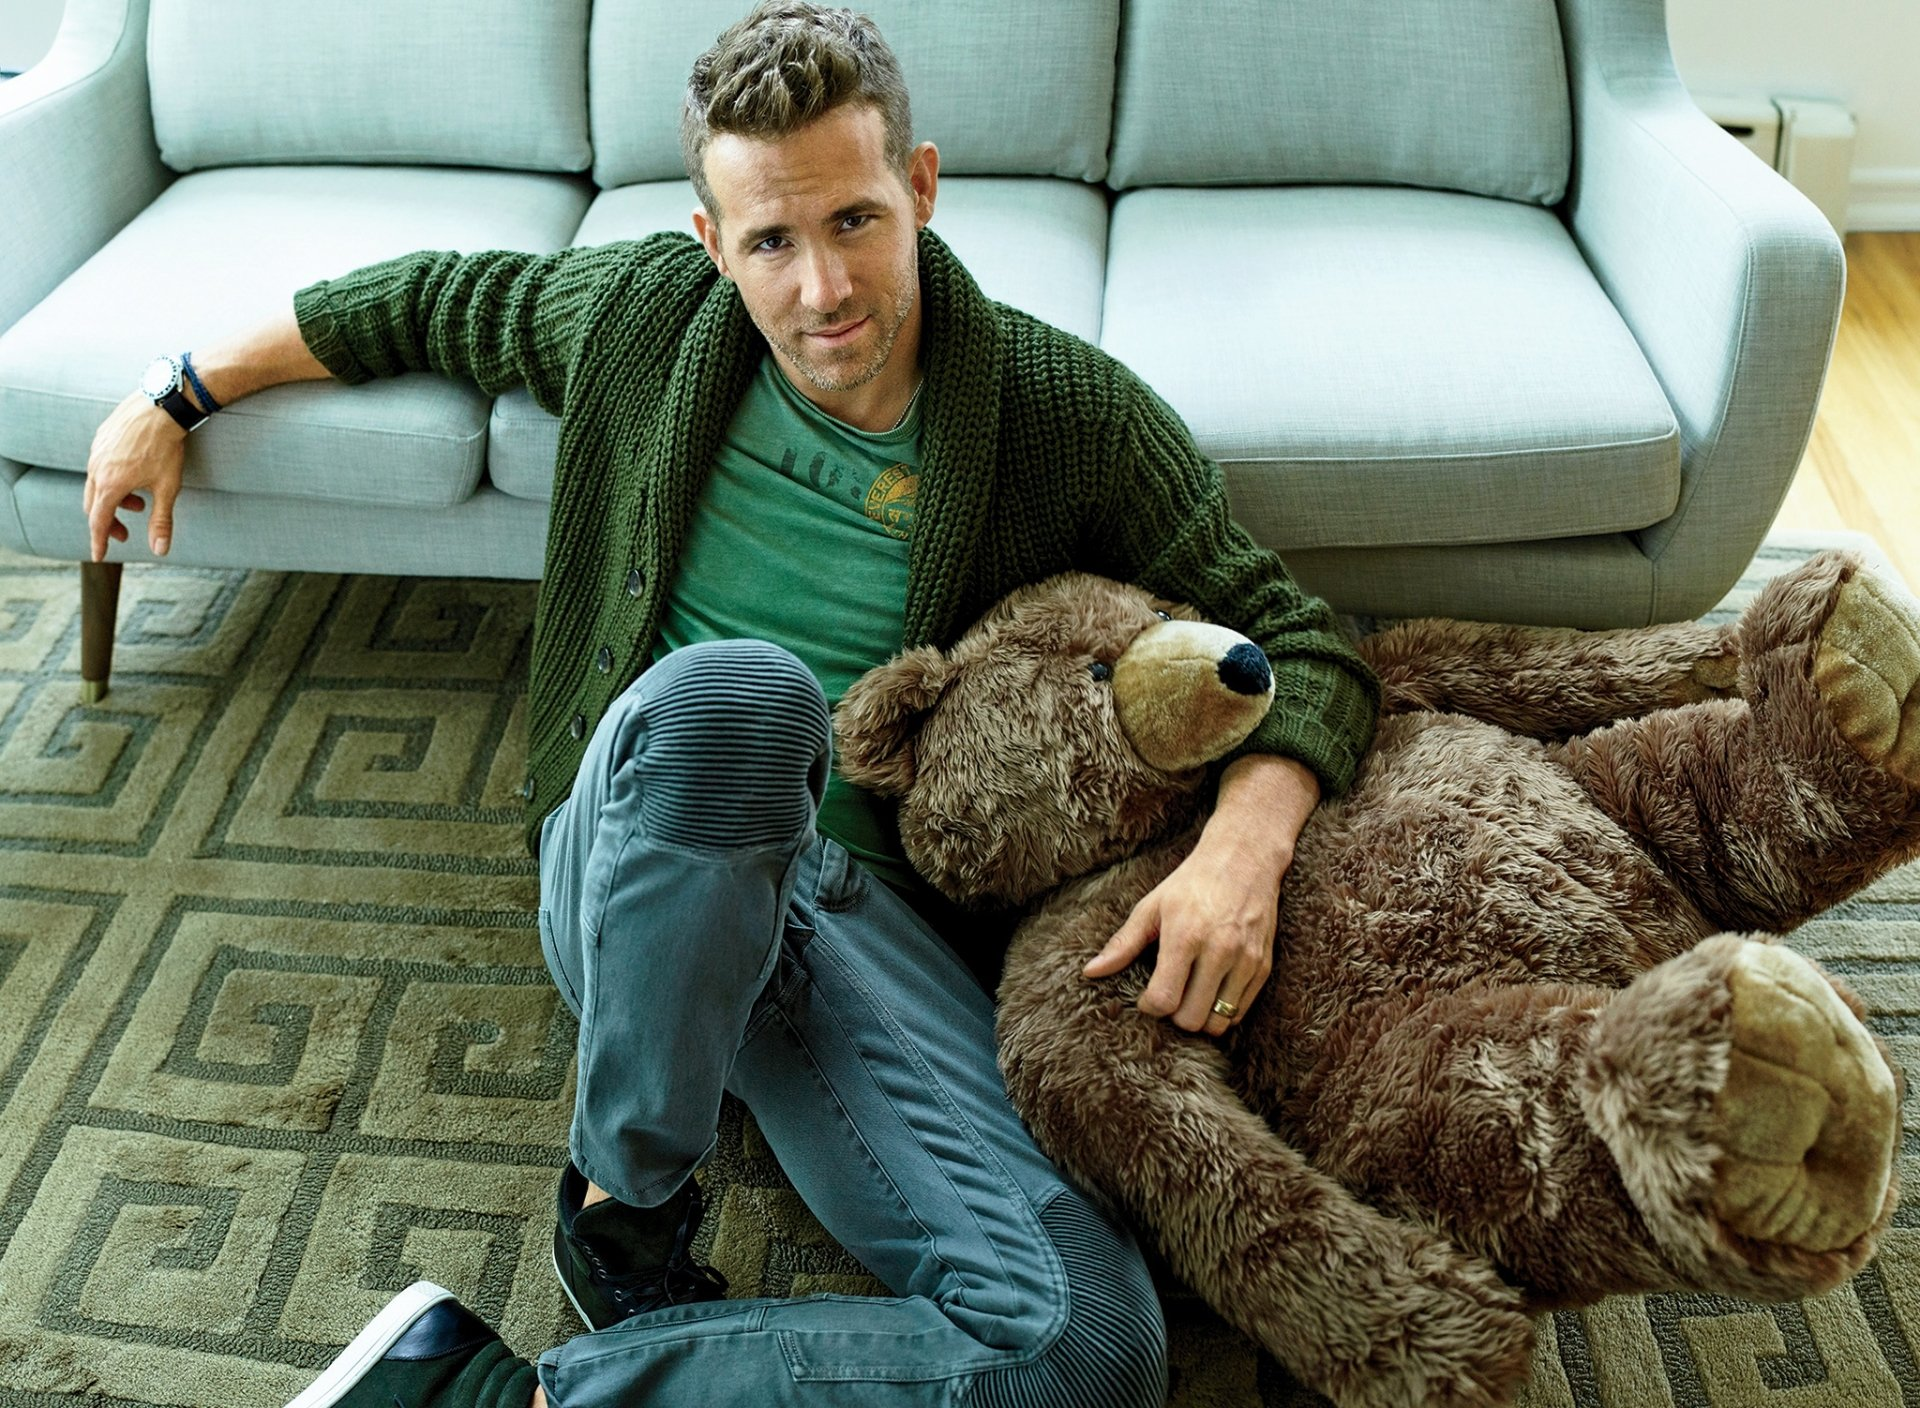 名人 - Ryan Reynolds  演员 Canadian Teddy Bear 毛绒玩具 壁纸